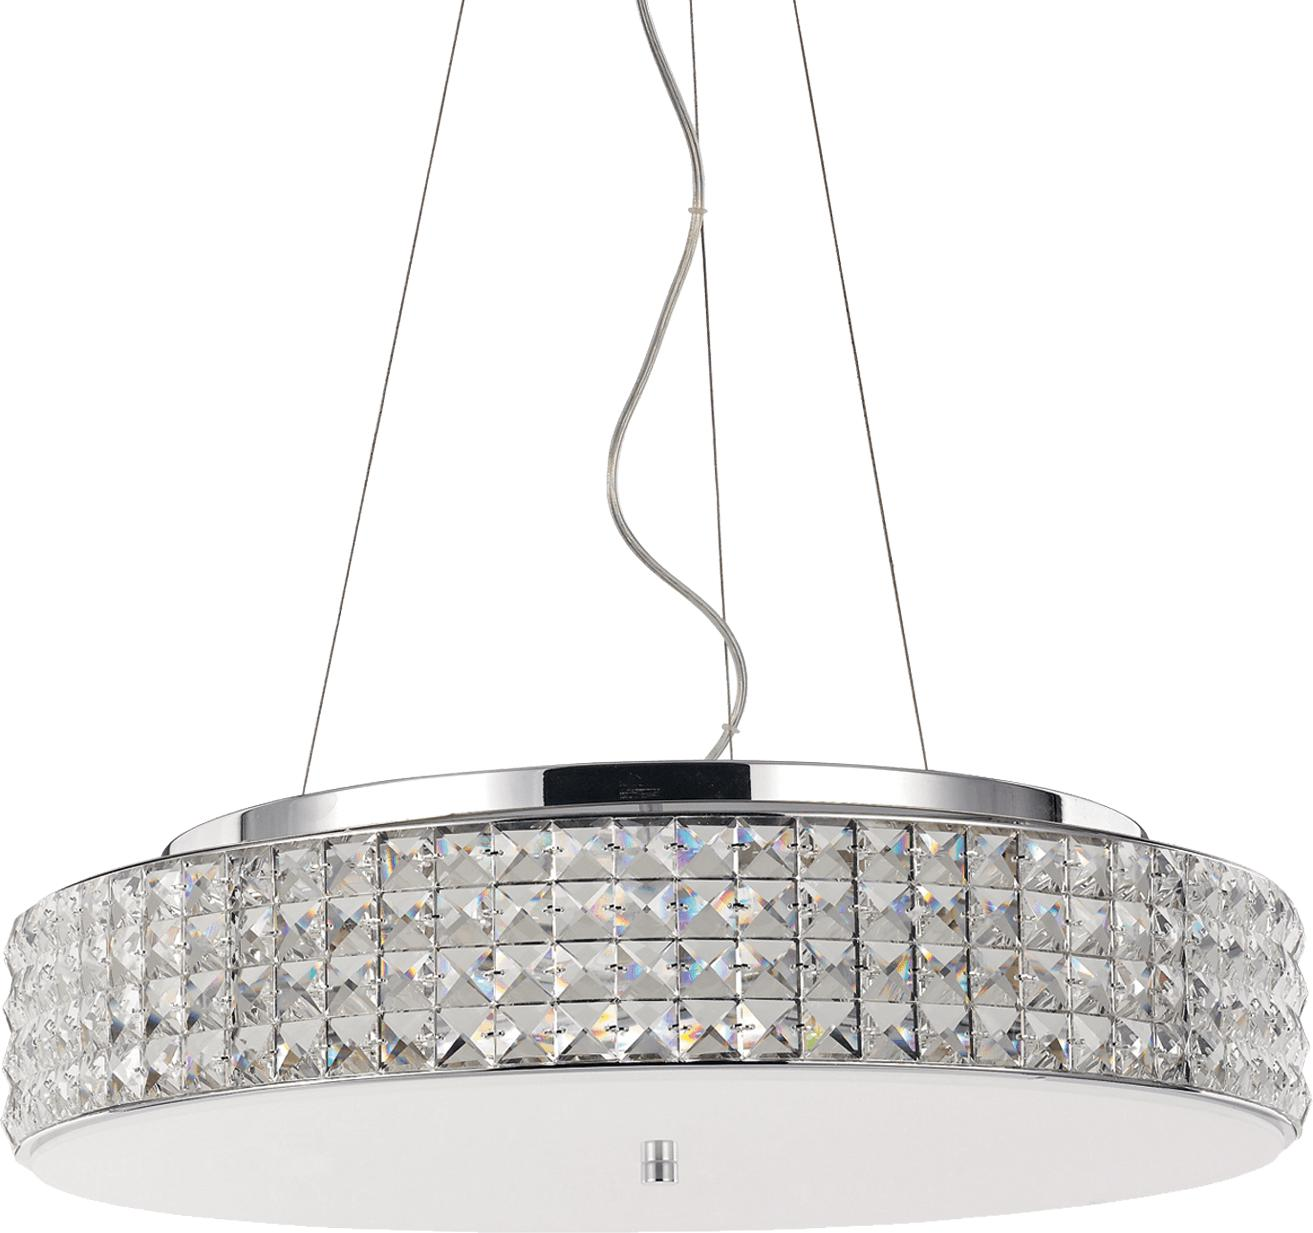 Ideal lux LED roma sp9 Pendelleuchten 9x4,5W 93048